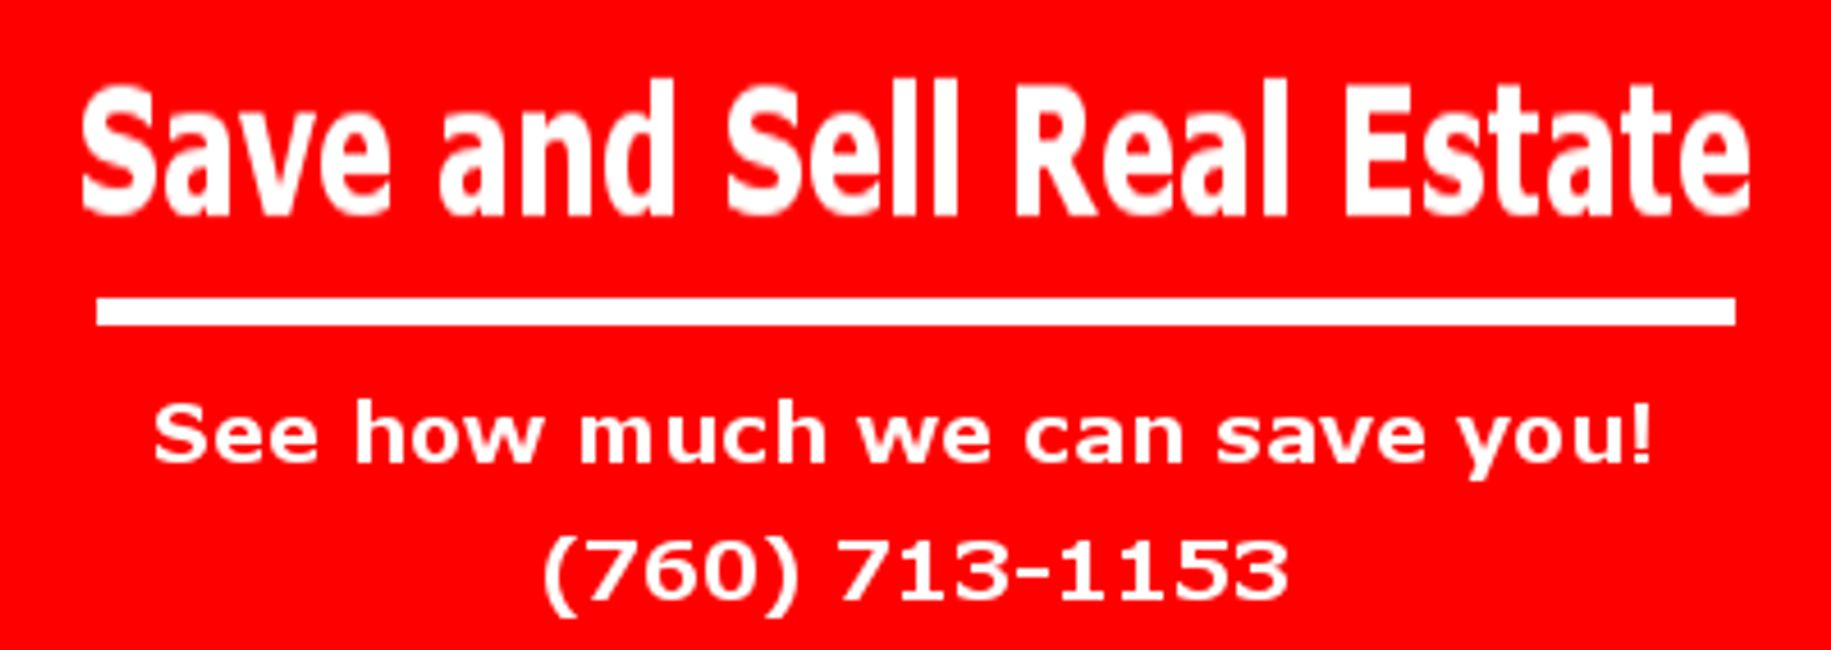 Red Background with White Text. Save and Sell Real Estate. See how much we can save you!